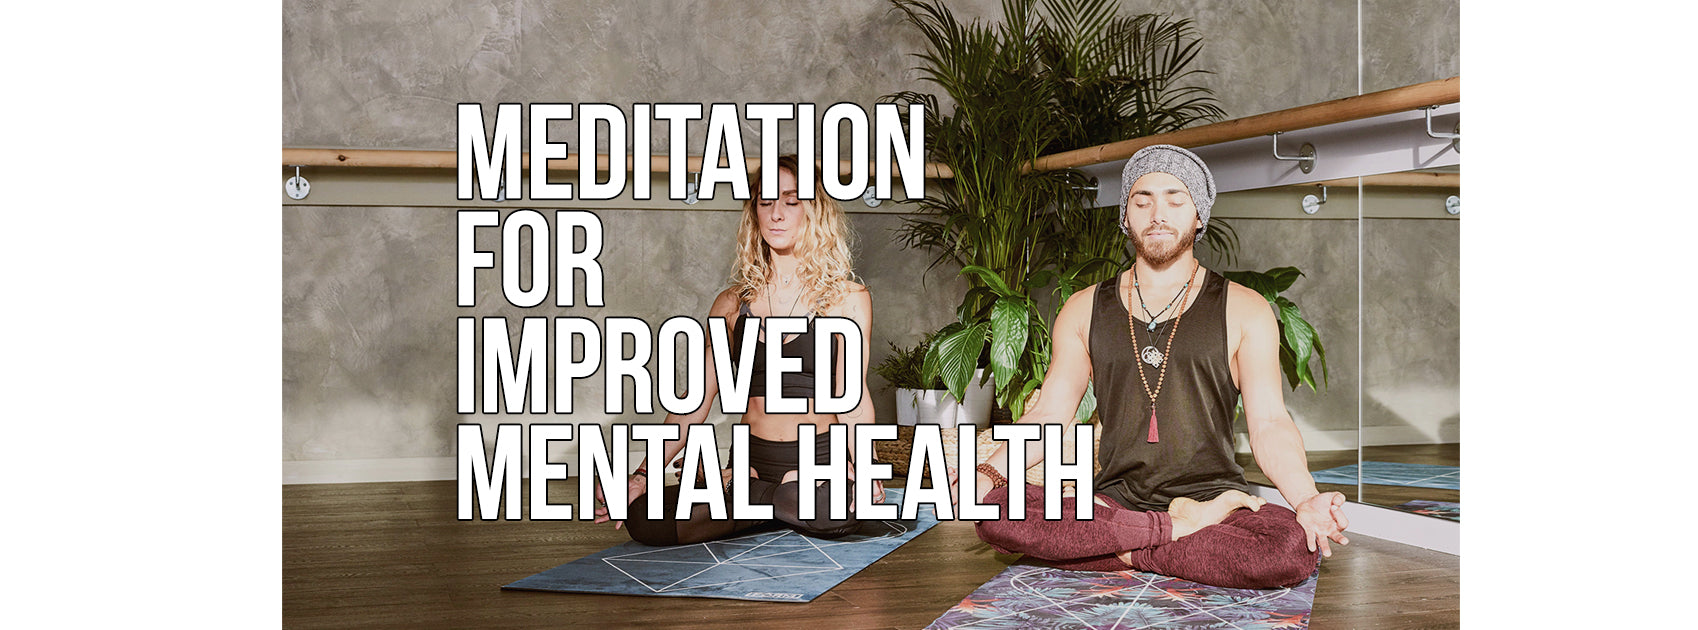 Meditation for Improved Mental Health